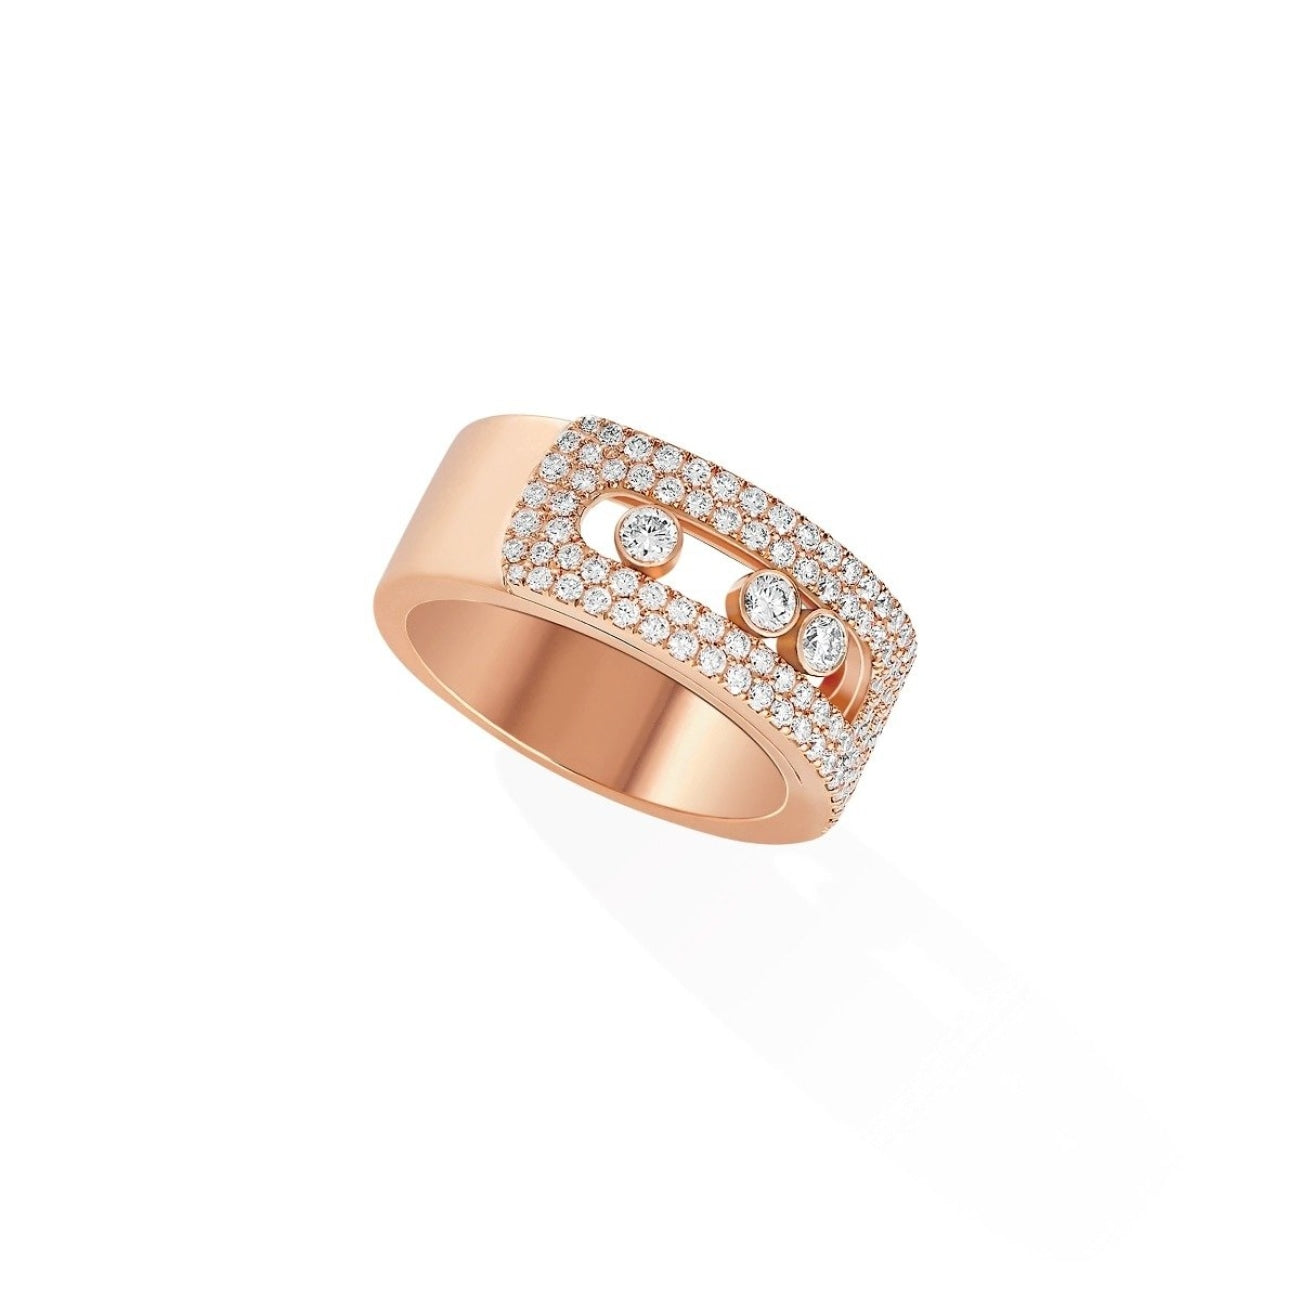 Messika Jewelry - Move Noa GM Pavé RING - PINK GOLD | Manfredi Jewels